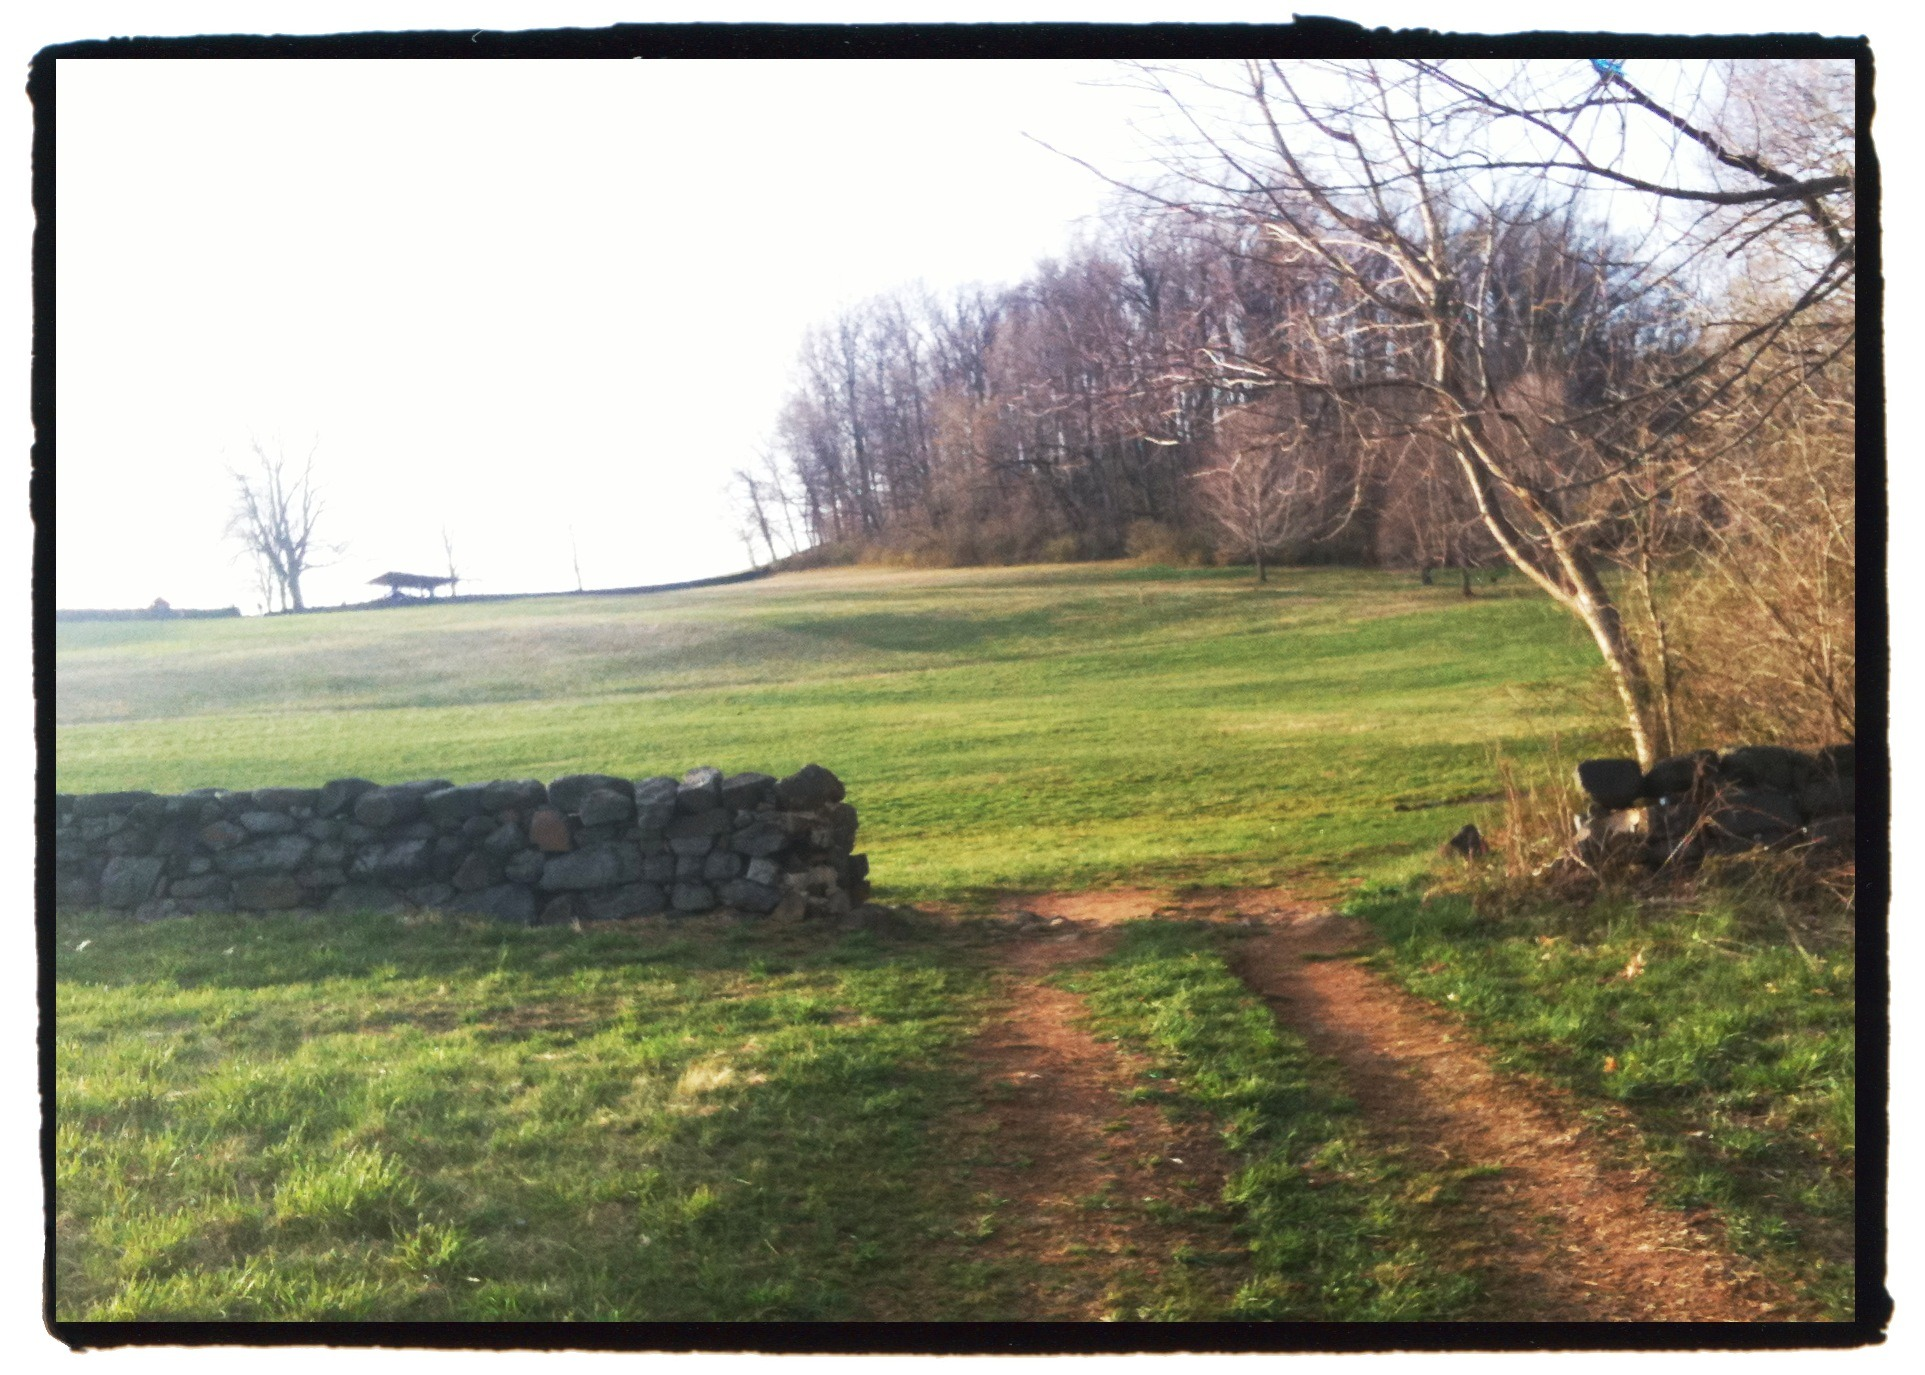 2010 Brandywine End-to-End Hike - Mobile Photos